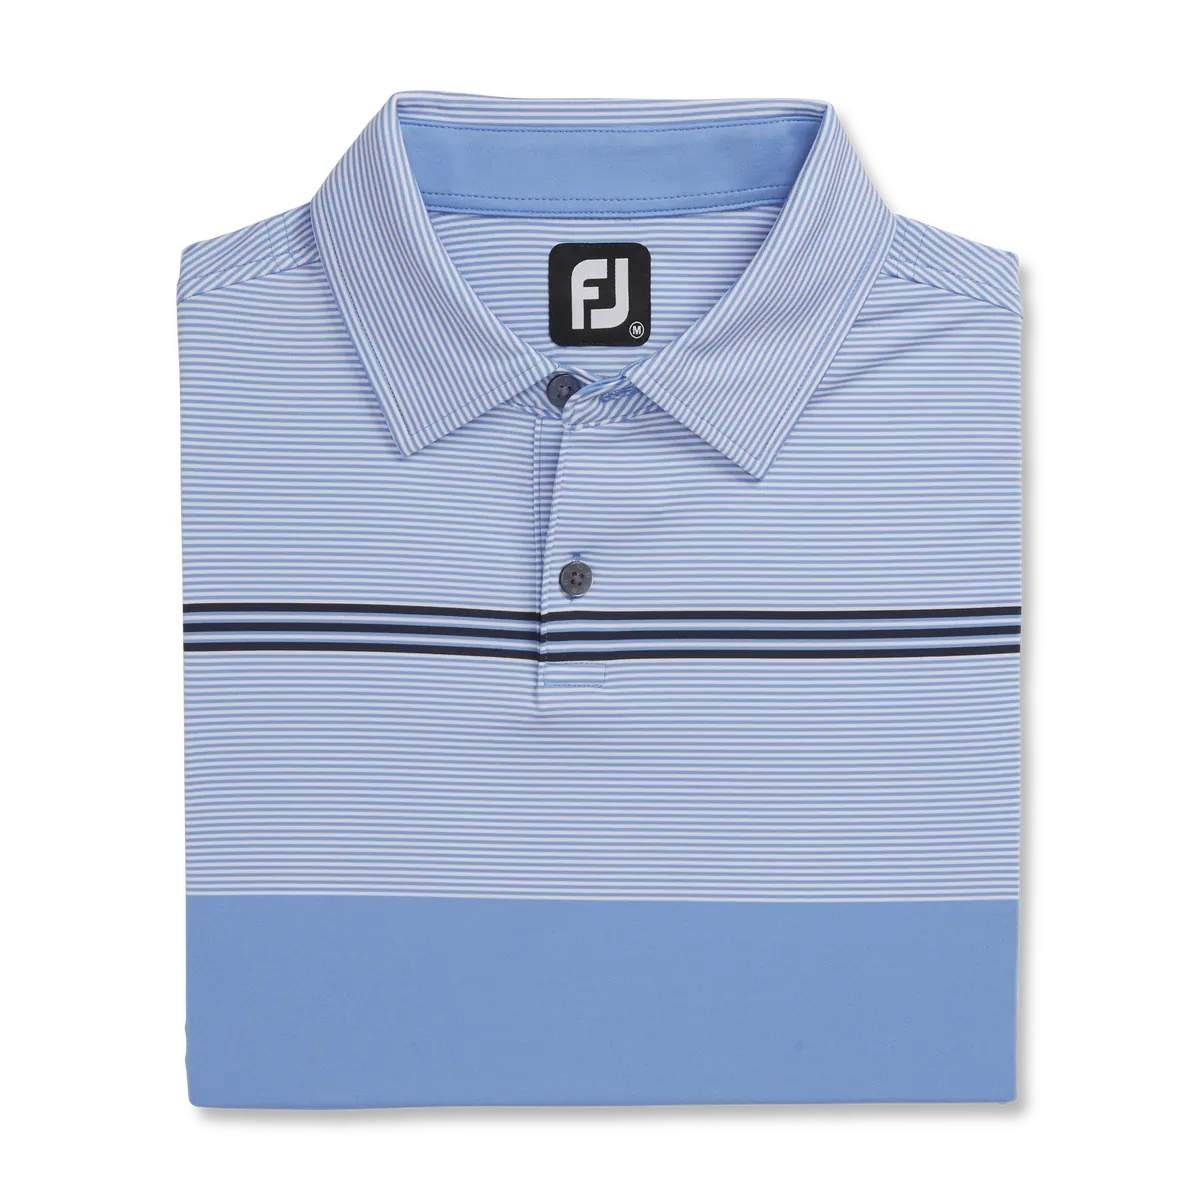 FootJoy Men's Lisle Engineered Pinstripe Lagoon/White/Navy Polo